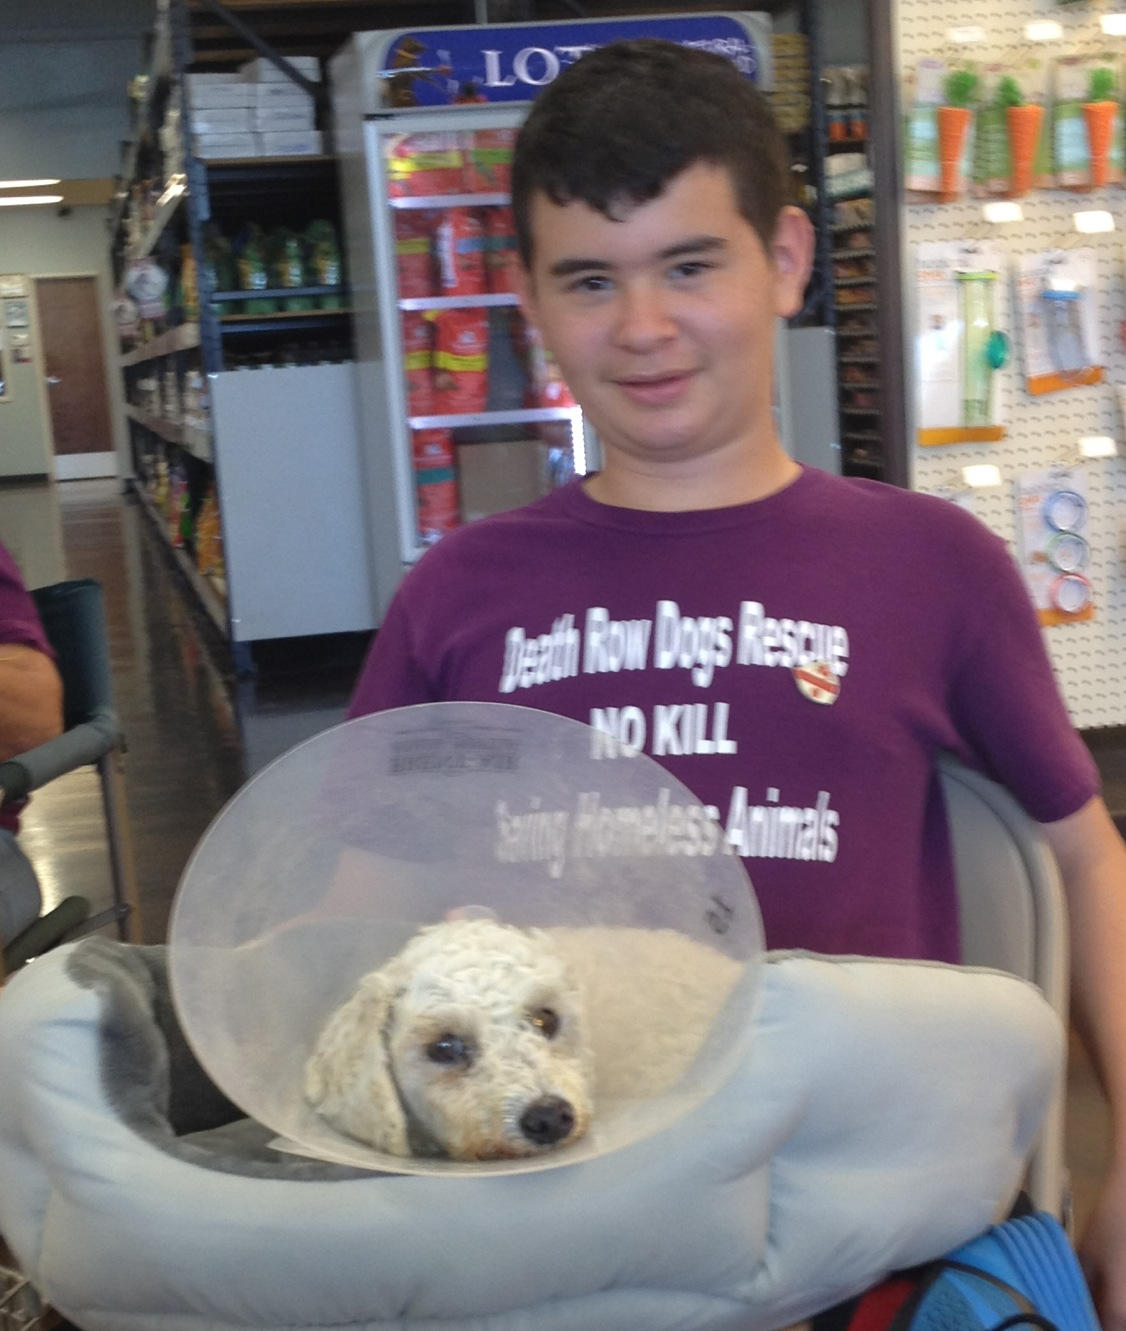 Brandon is our Volunteer Coordinator at our adoption events. We appreciate his time, knowledge and compassion for the animals.